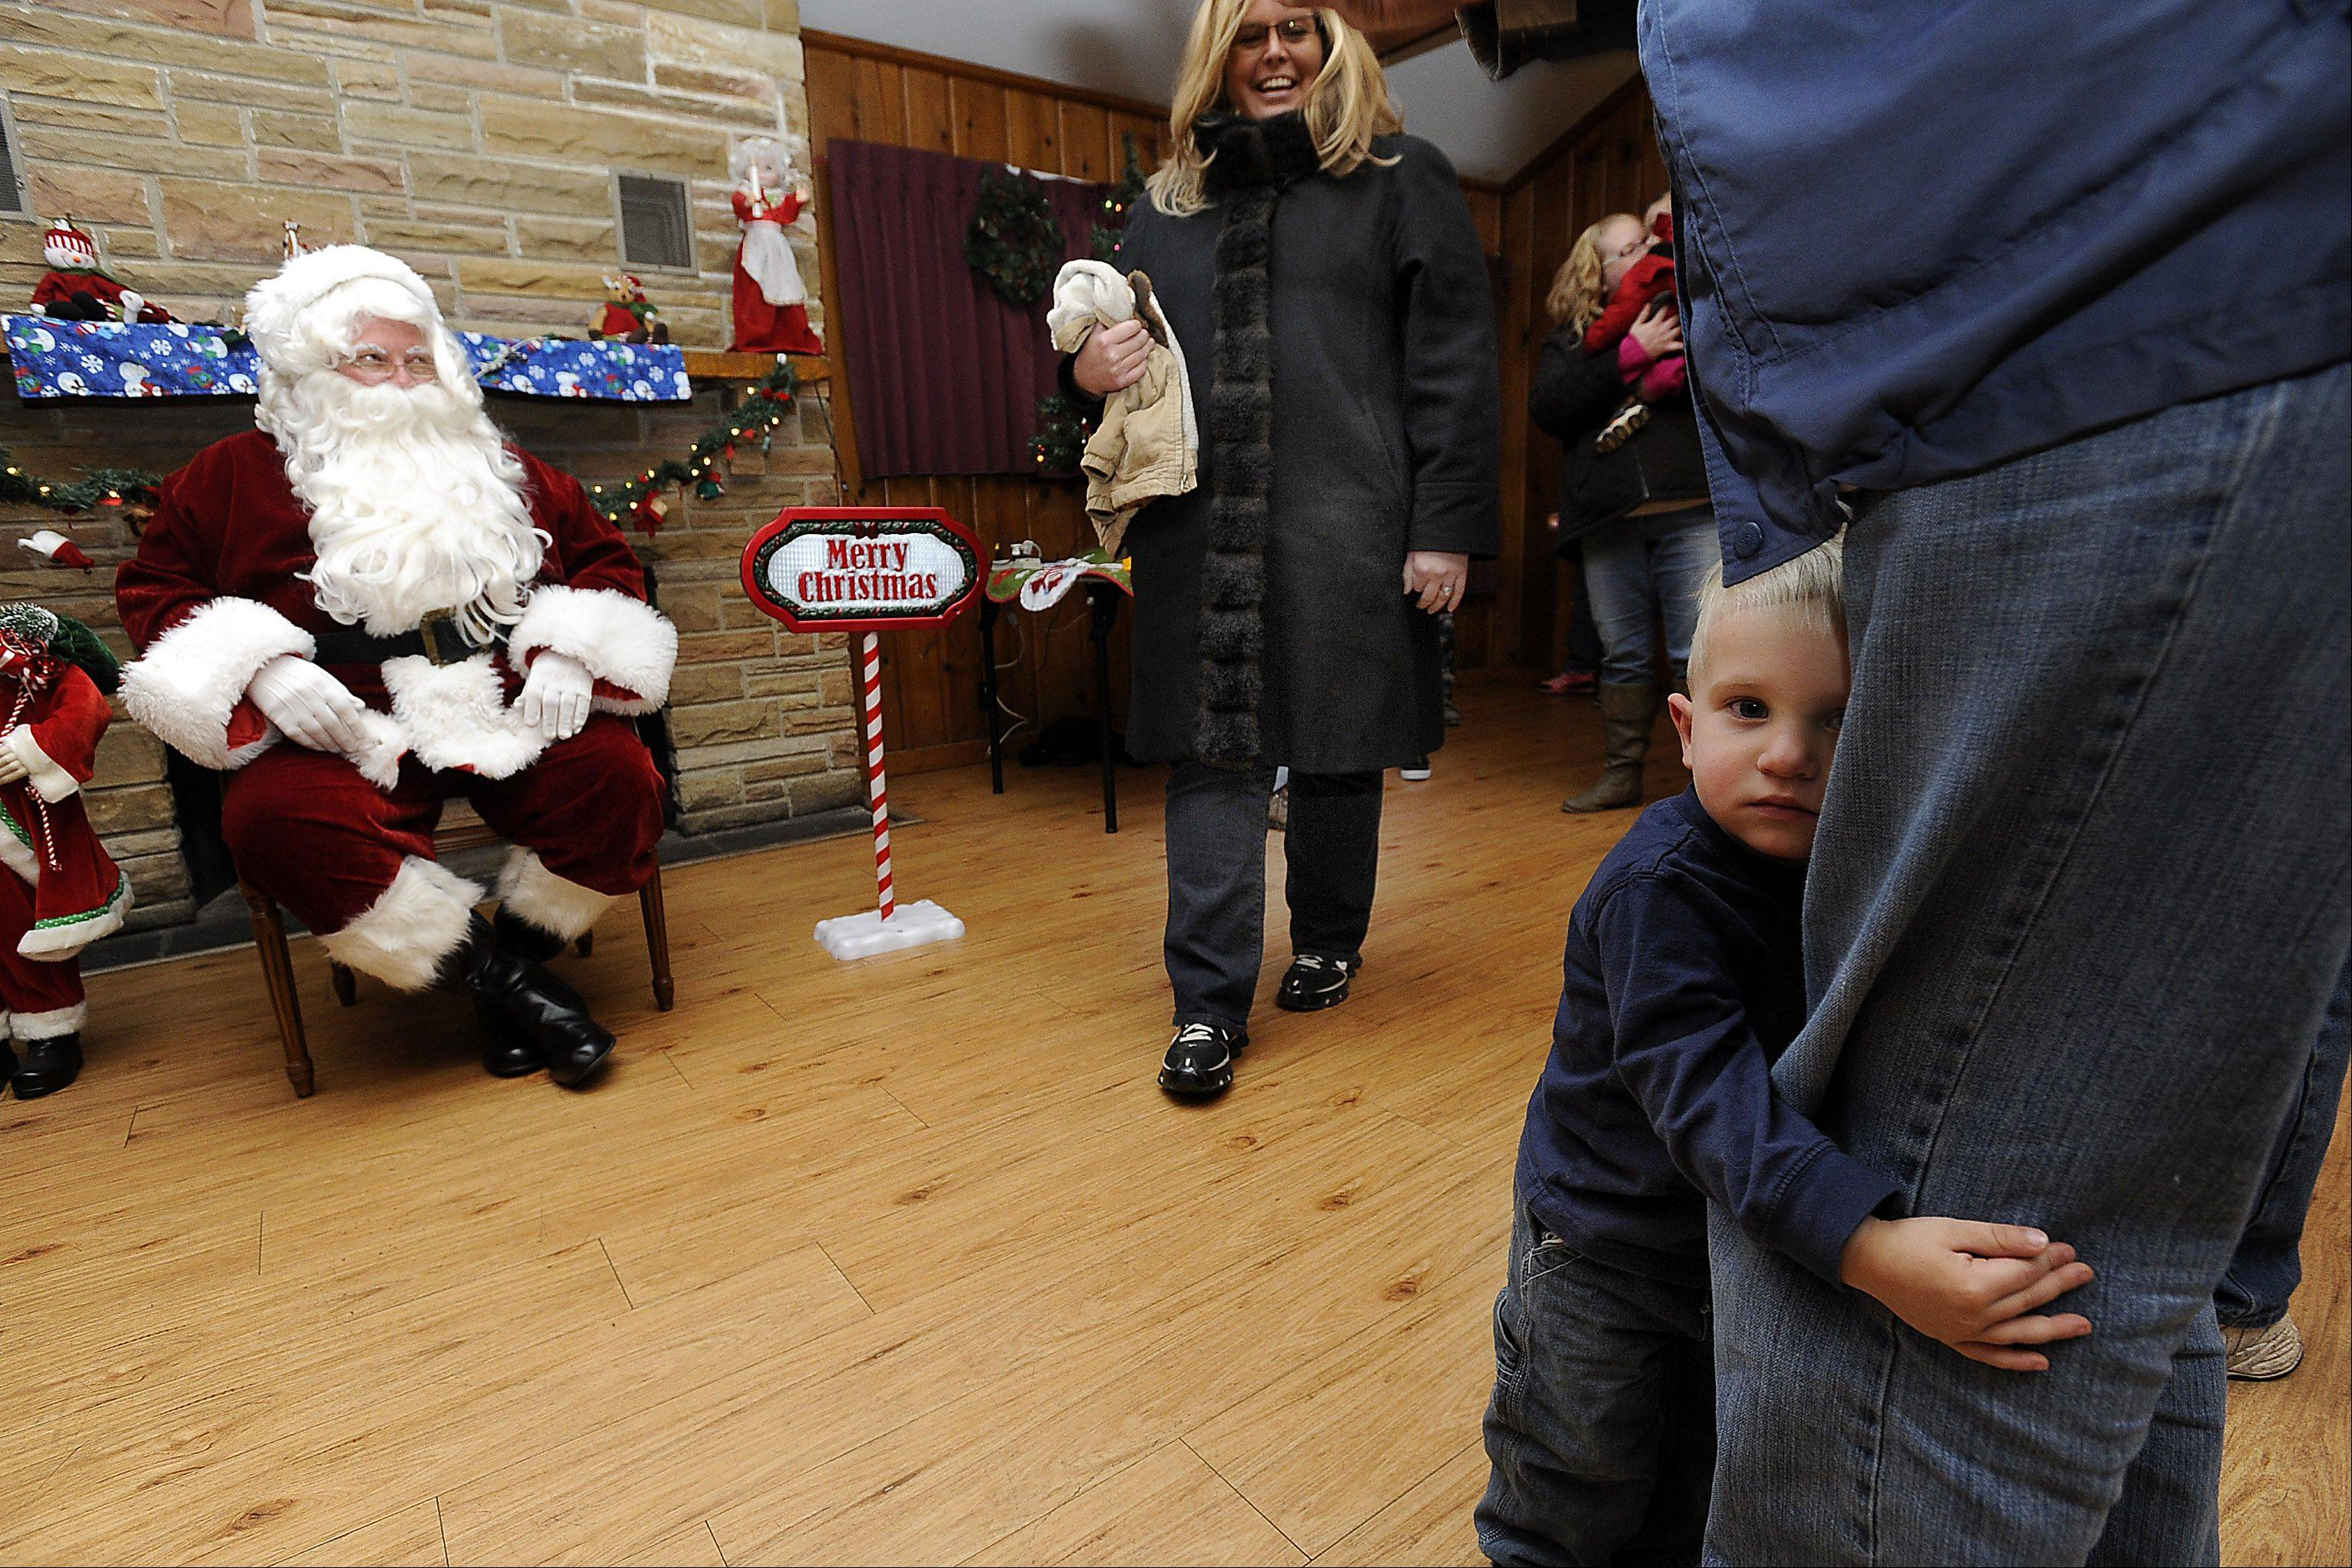 Austin McPherson, 1, of Bartlett clings to his dad Phil's leg as he shies away from Santa during the tree-lighting ceremony Friday in Bartlett.